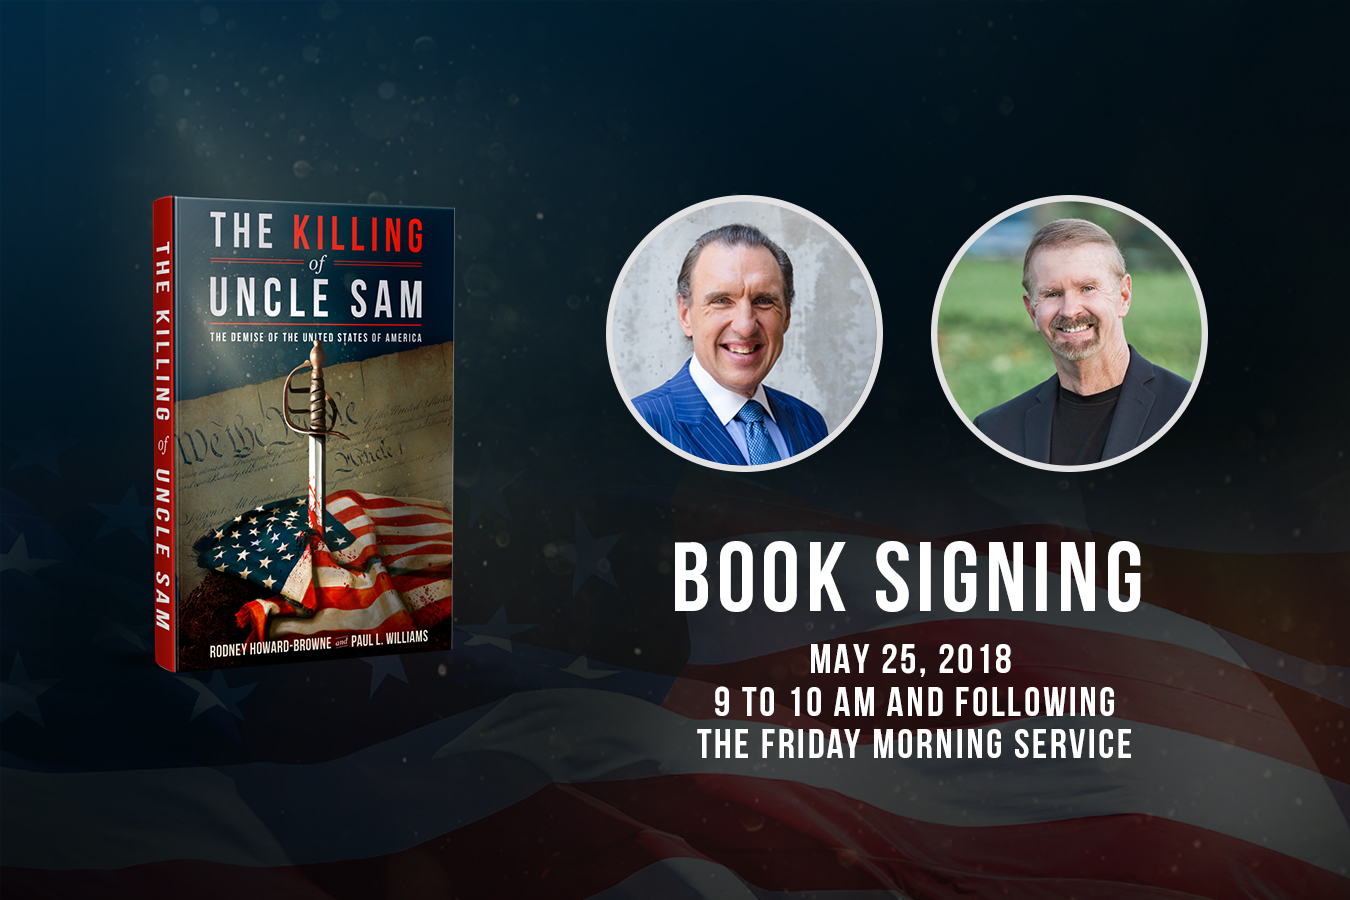 Killing Uncle Sam Book Signing